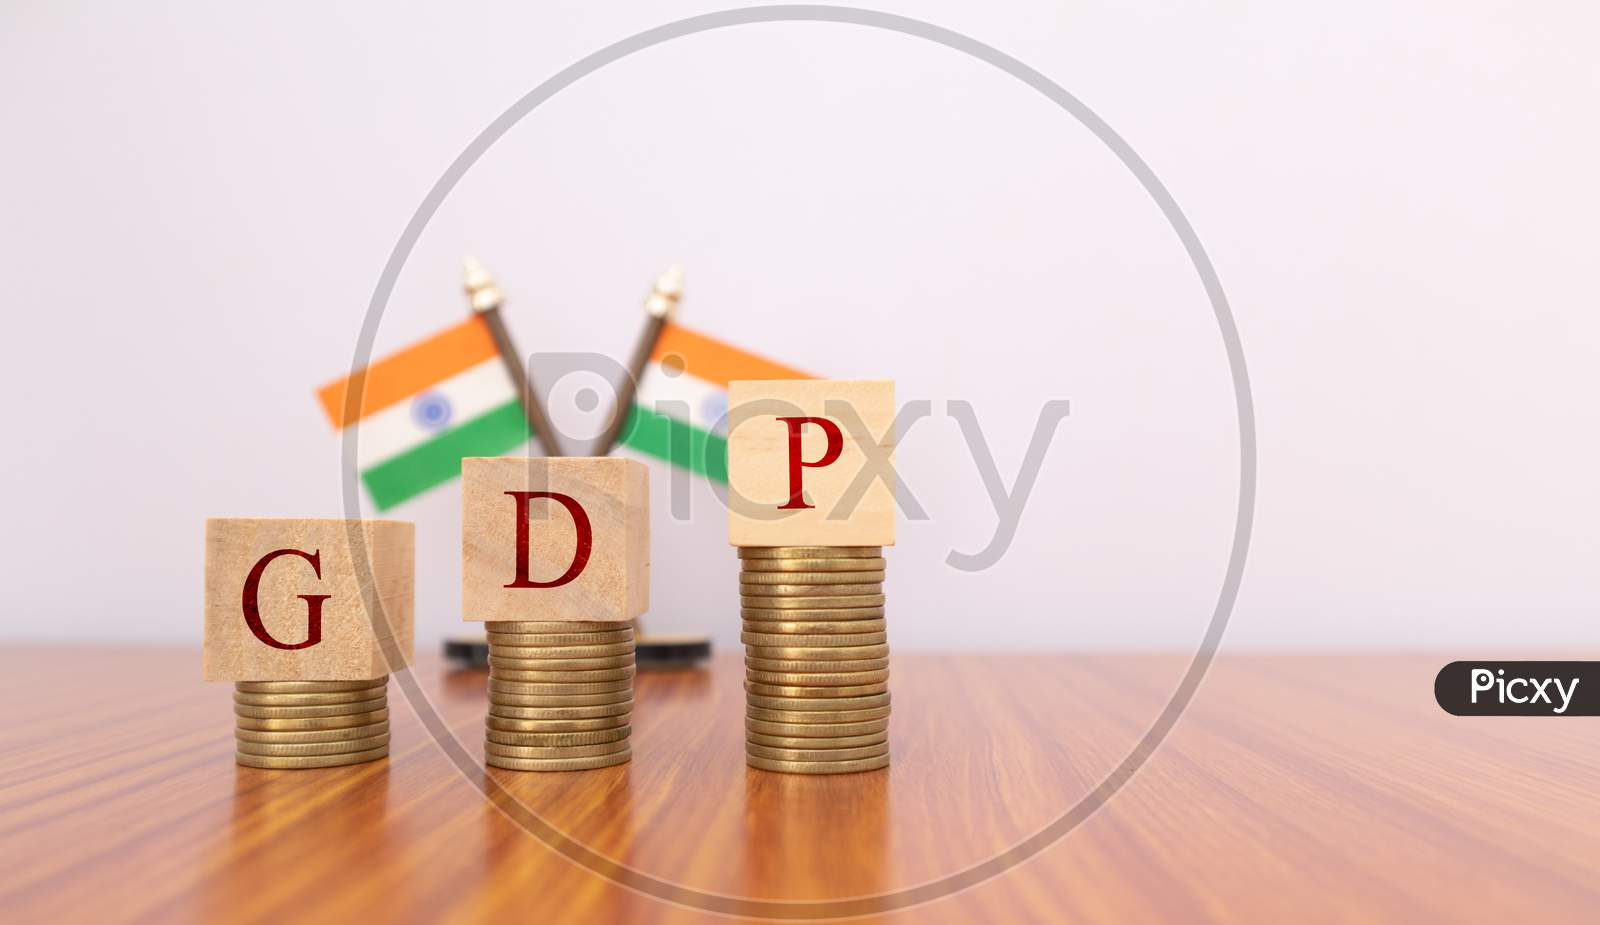 Gdp Or Gross Domestic Product In Wooden Block Letters On Coins In Increasing Order With Indian Flag As A Background.